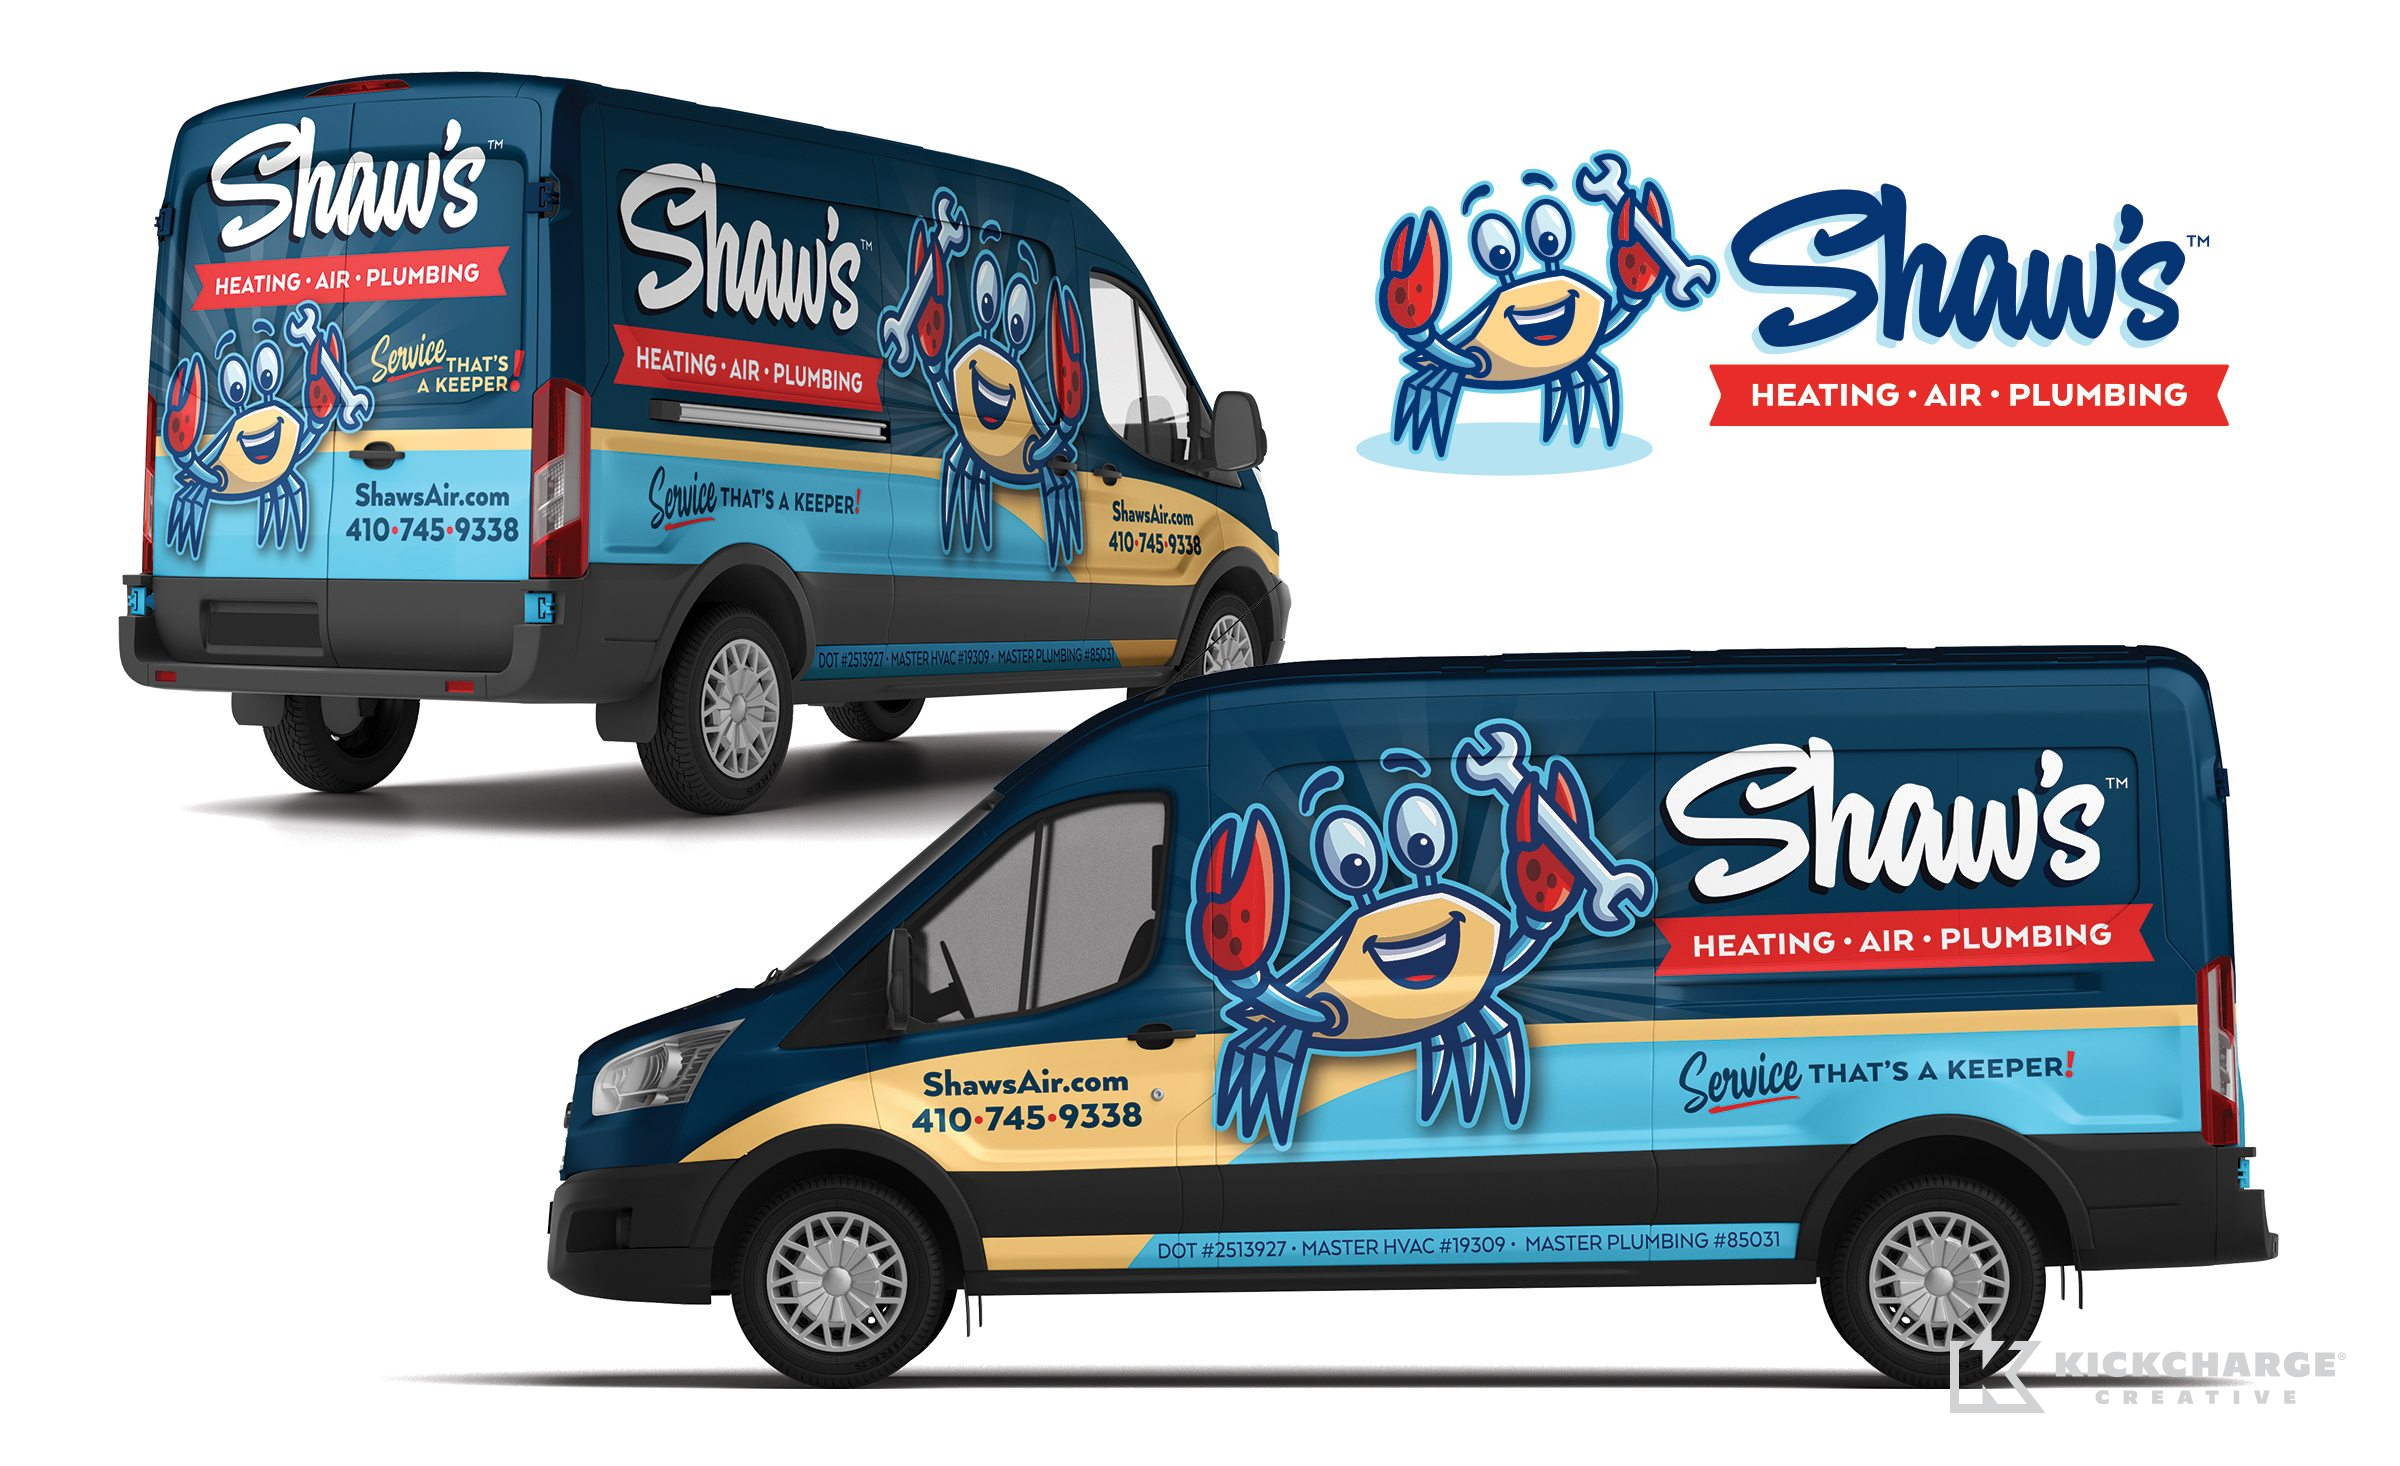 Shaw's Heating, Air & Plumbing